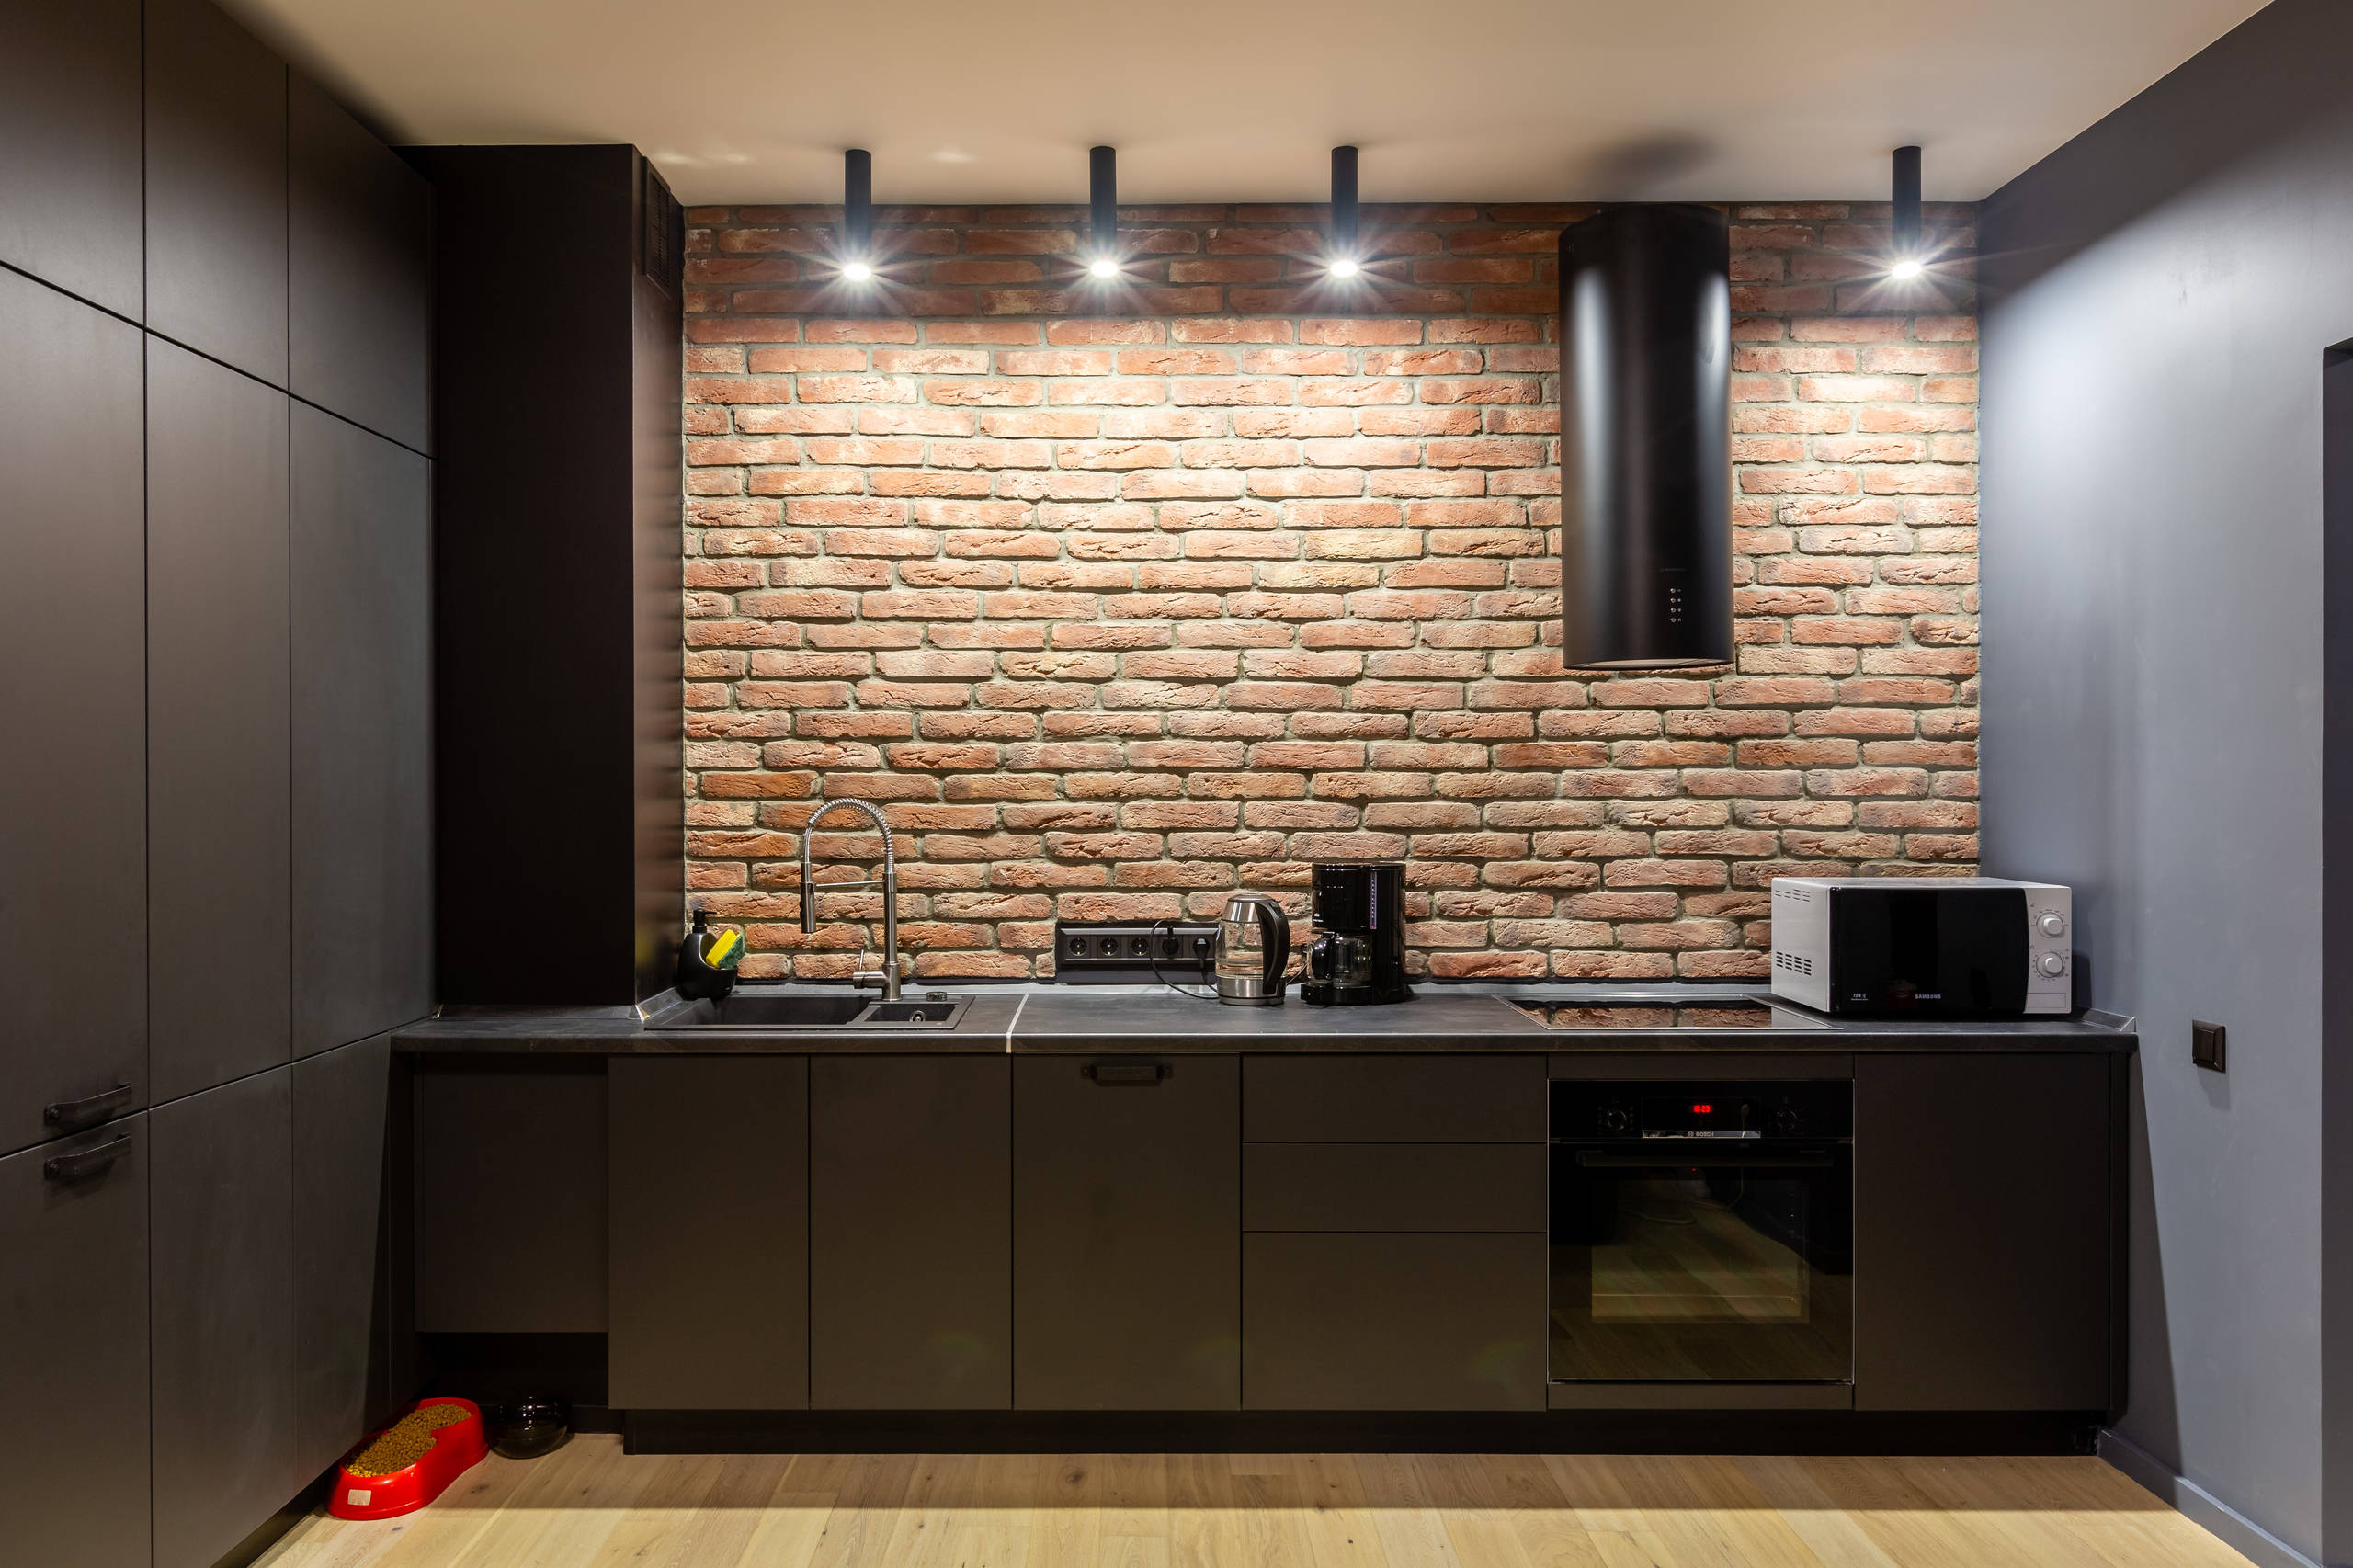 75 Beautiful Kitchen With Black Cabinets And Brick Backsplash Pictures Ideas January 2021 Houzz